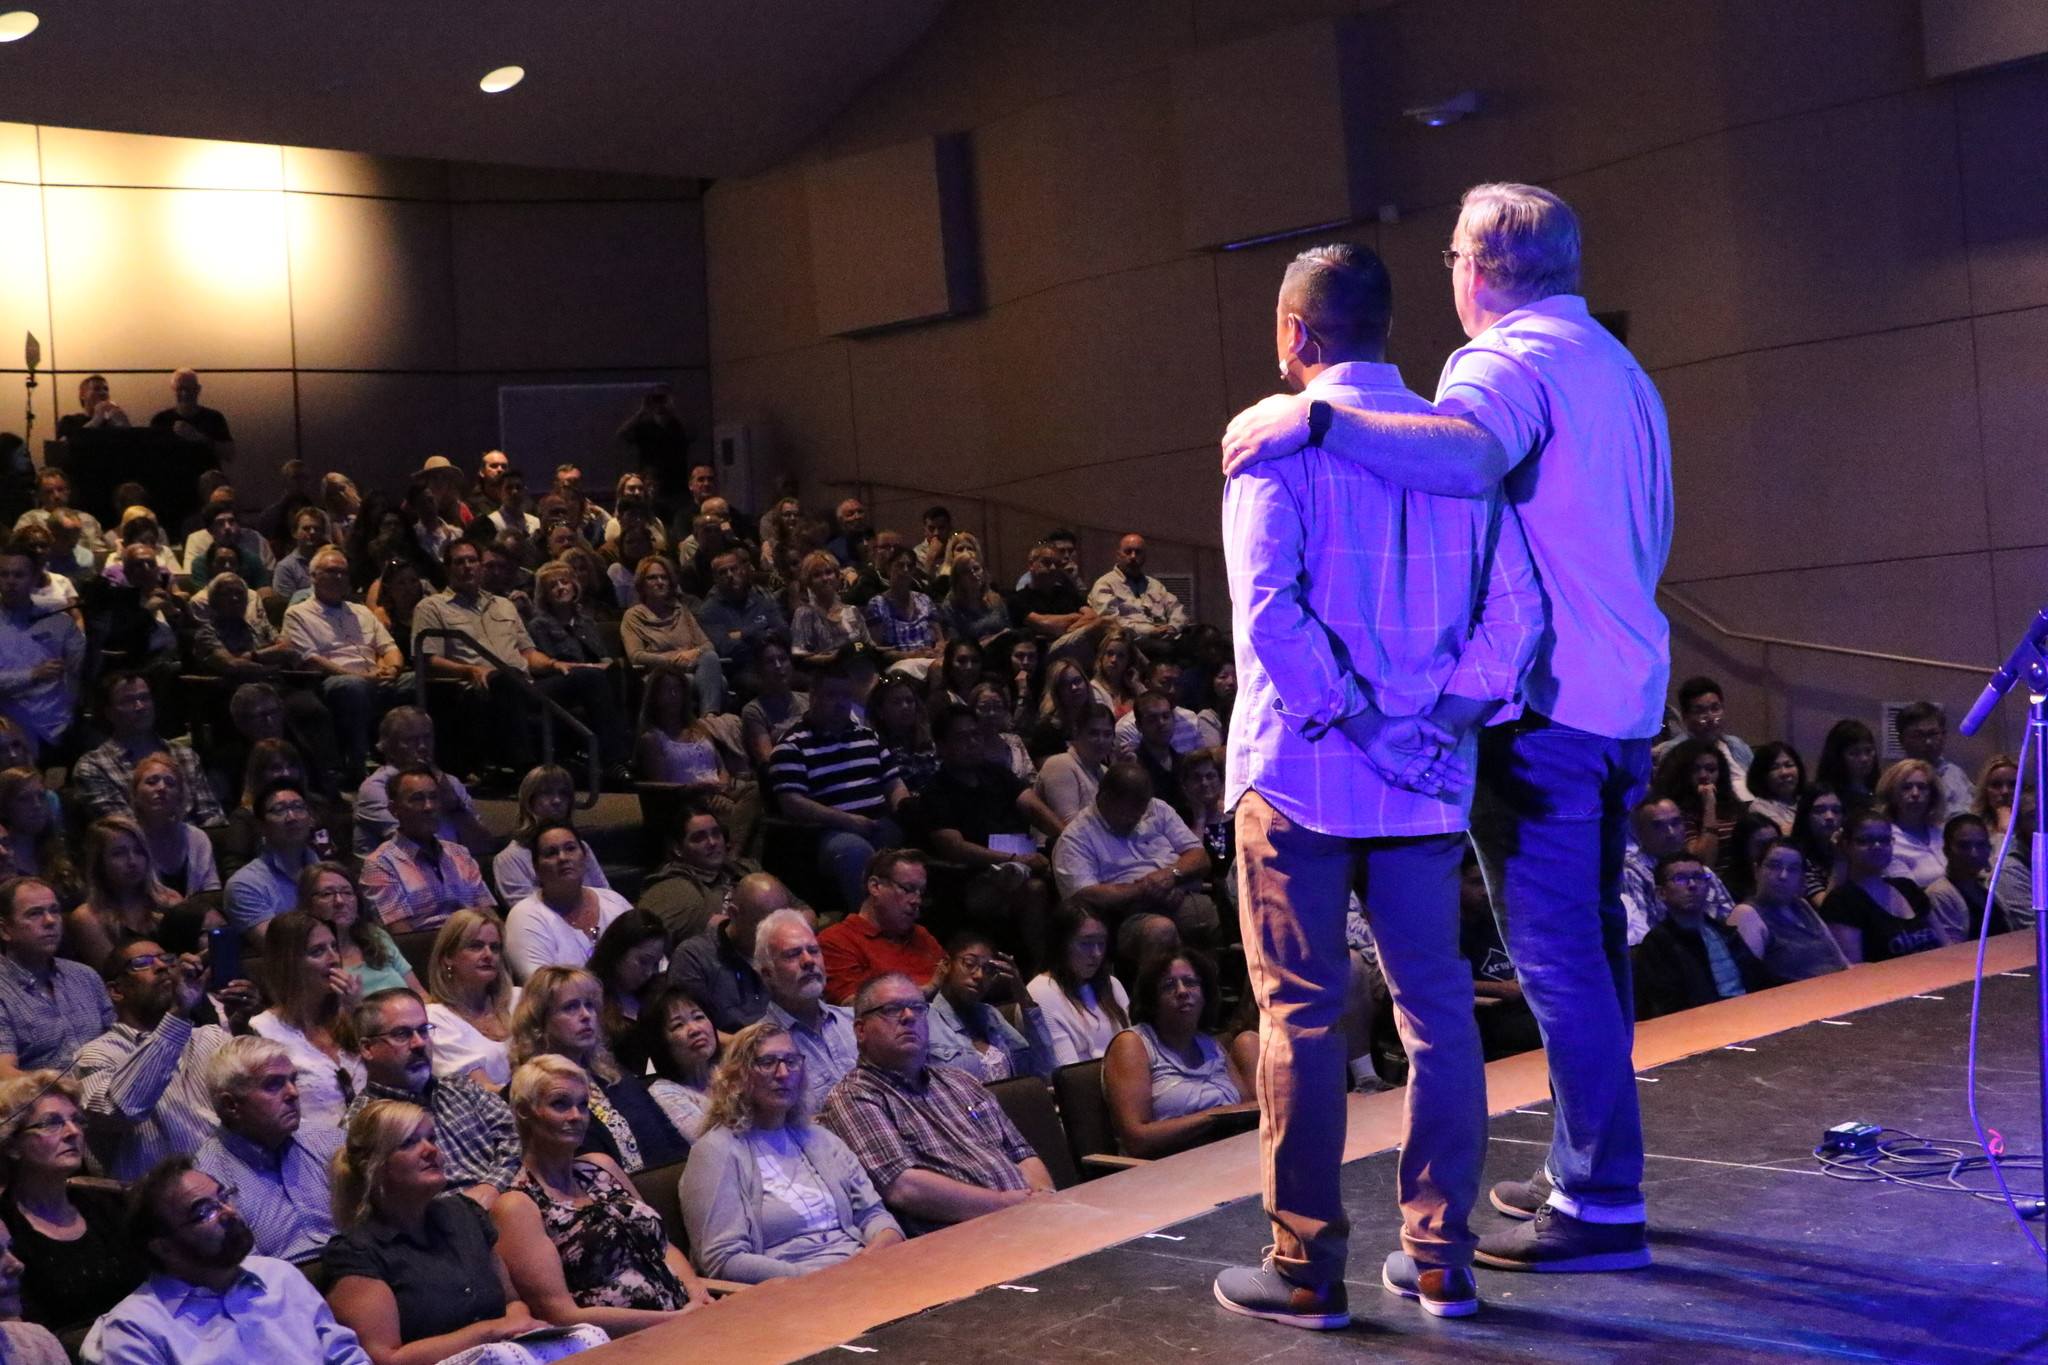 Pastors Jeff Gonzalez and Rick Warren at the opening of the new Saddleback Church,